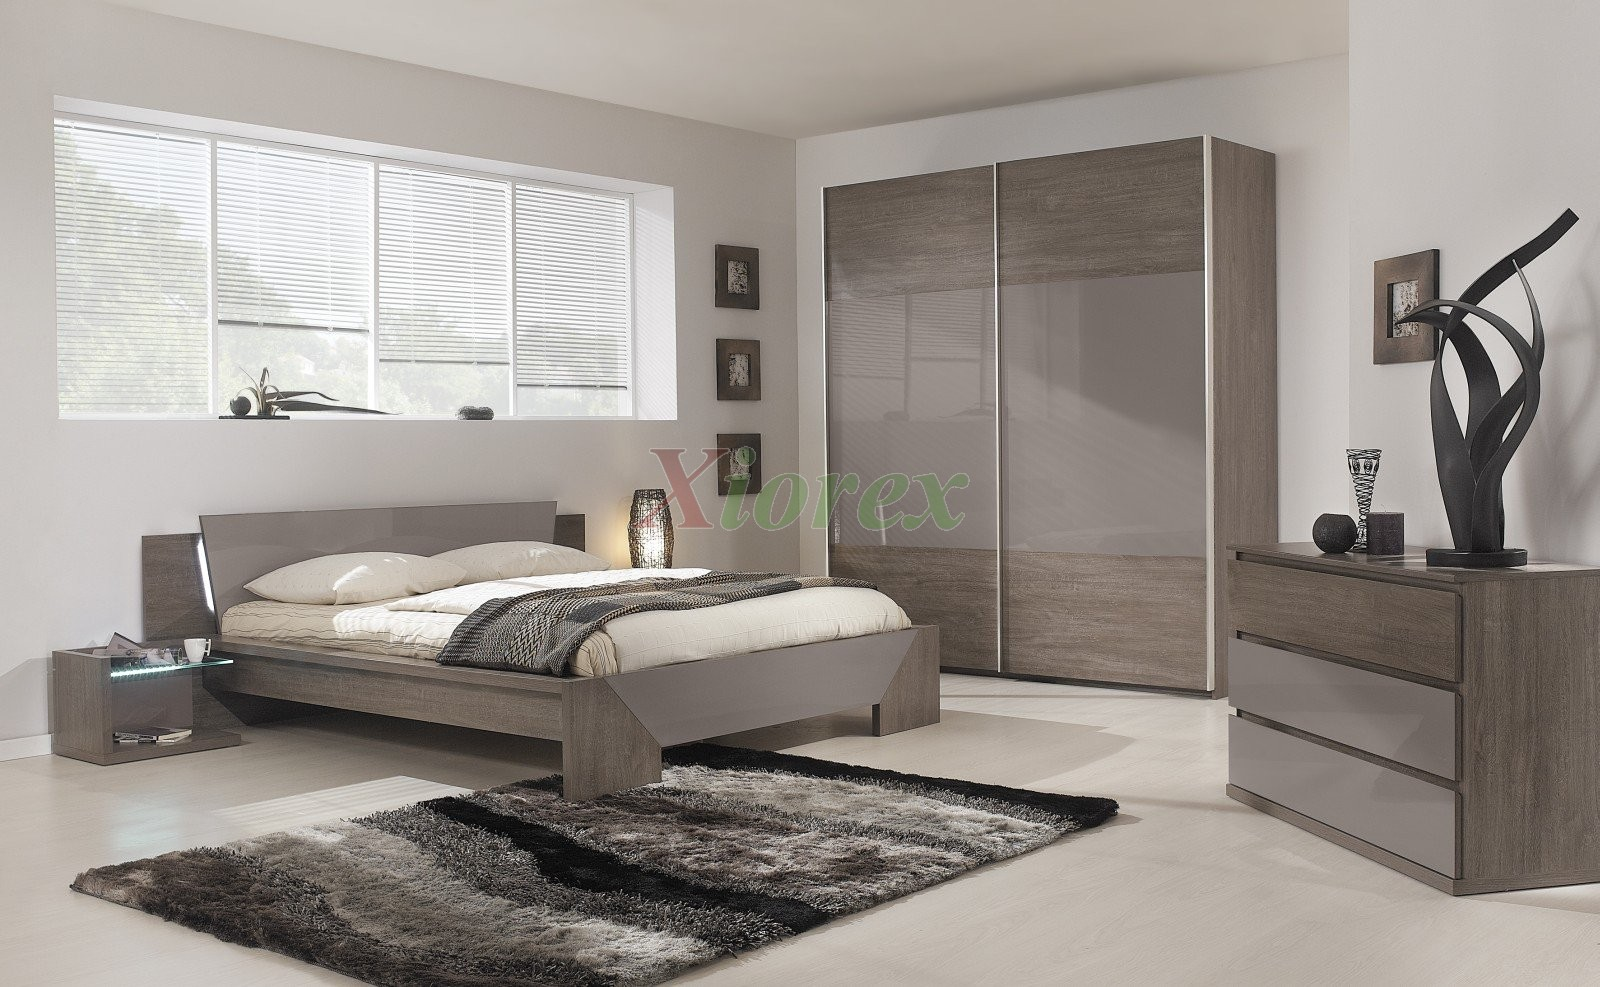 Com Gautier Gami Furniture Strong Gami Modern Bed Set By Gautier